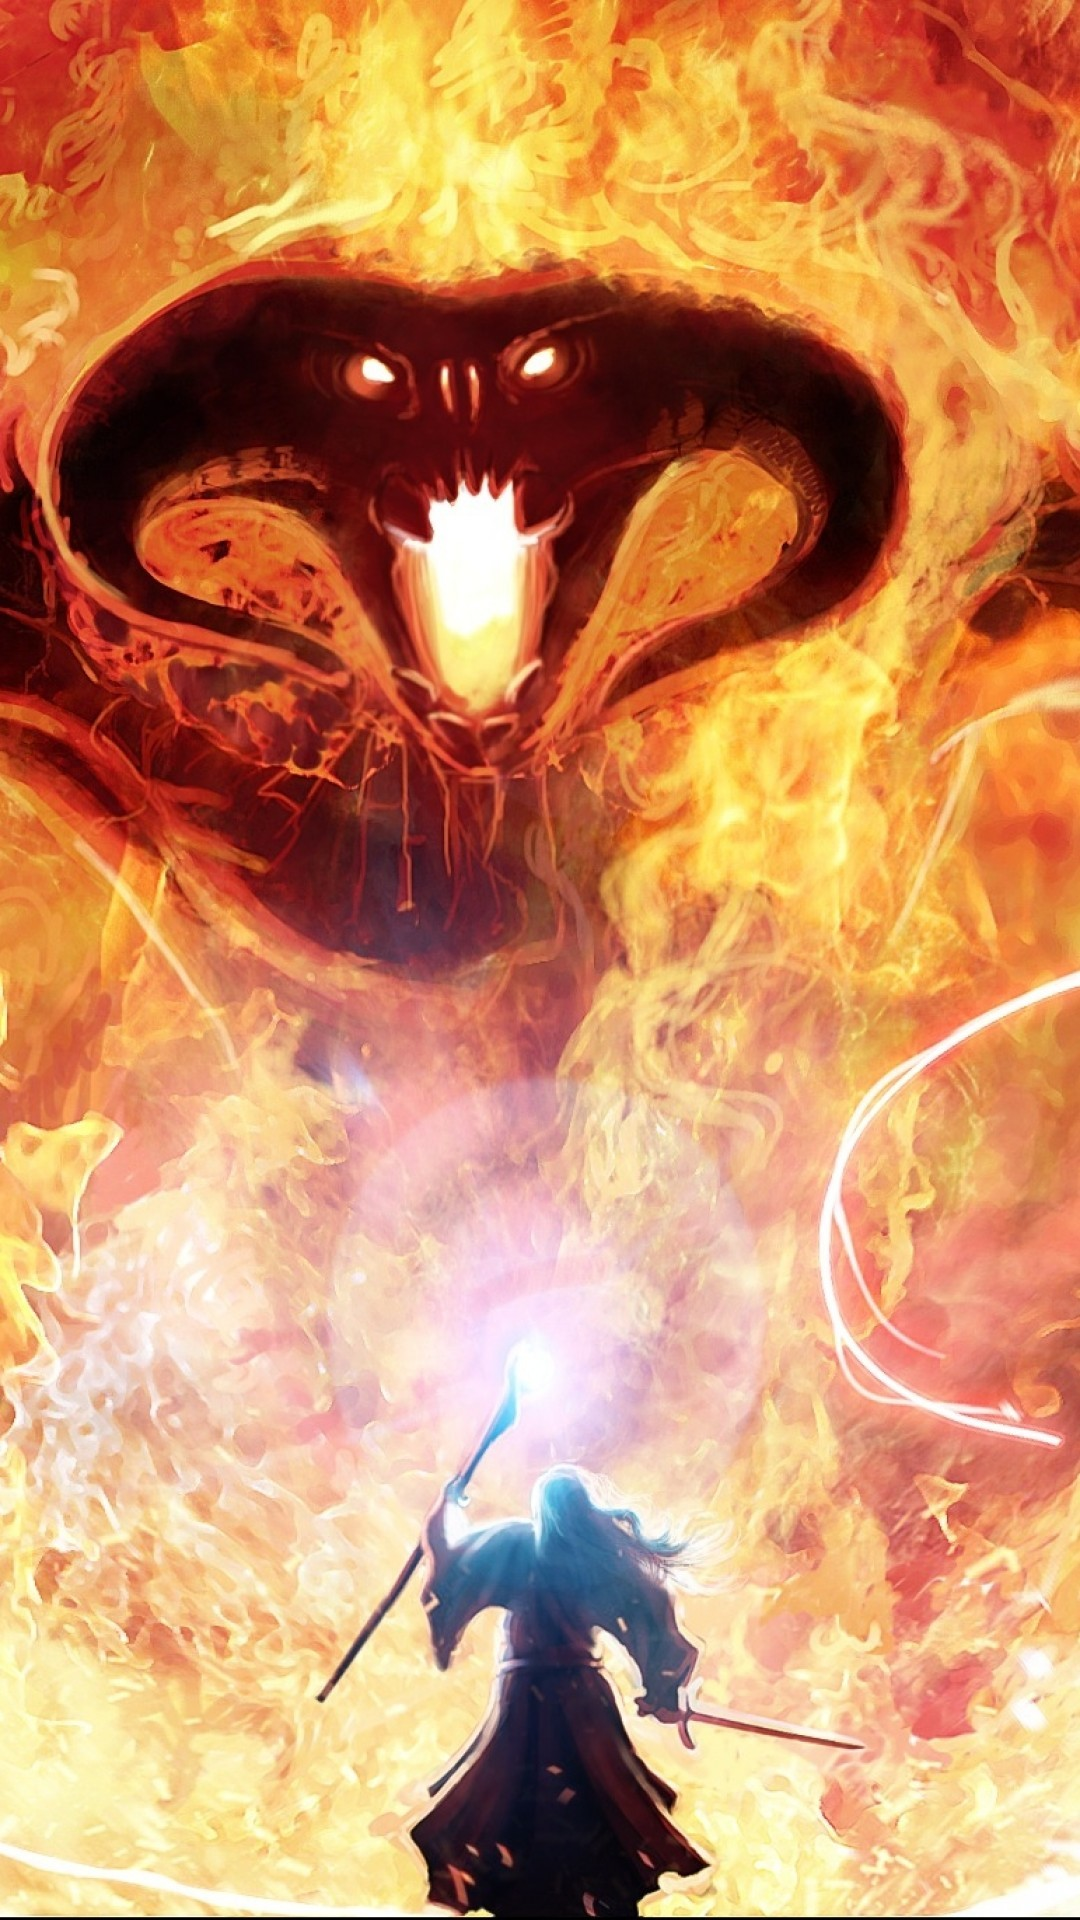 Lord Of The Rings, Balrog, Gandalf, Fire, Tolkien, Magic, Monster